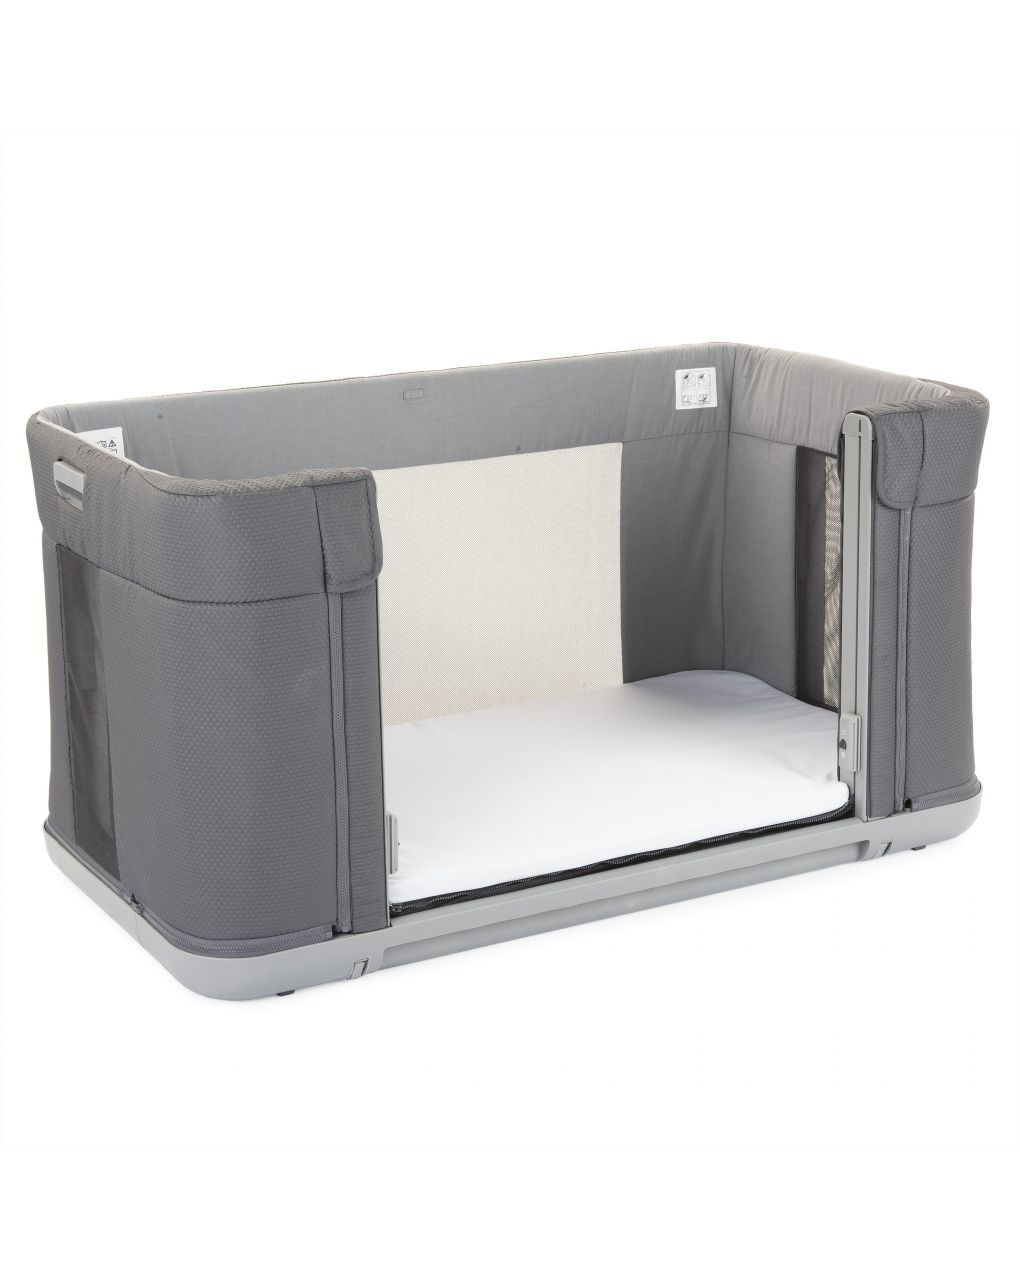 Next2me forever chicco moon grey - Chicco